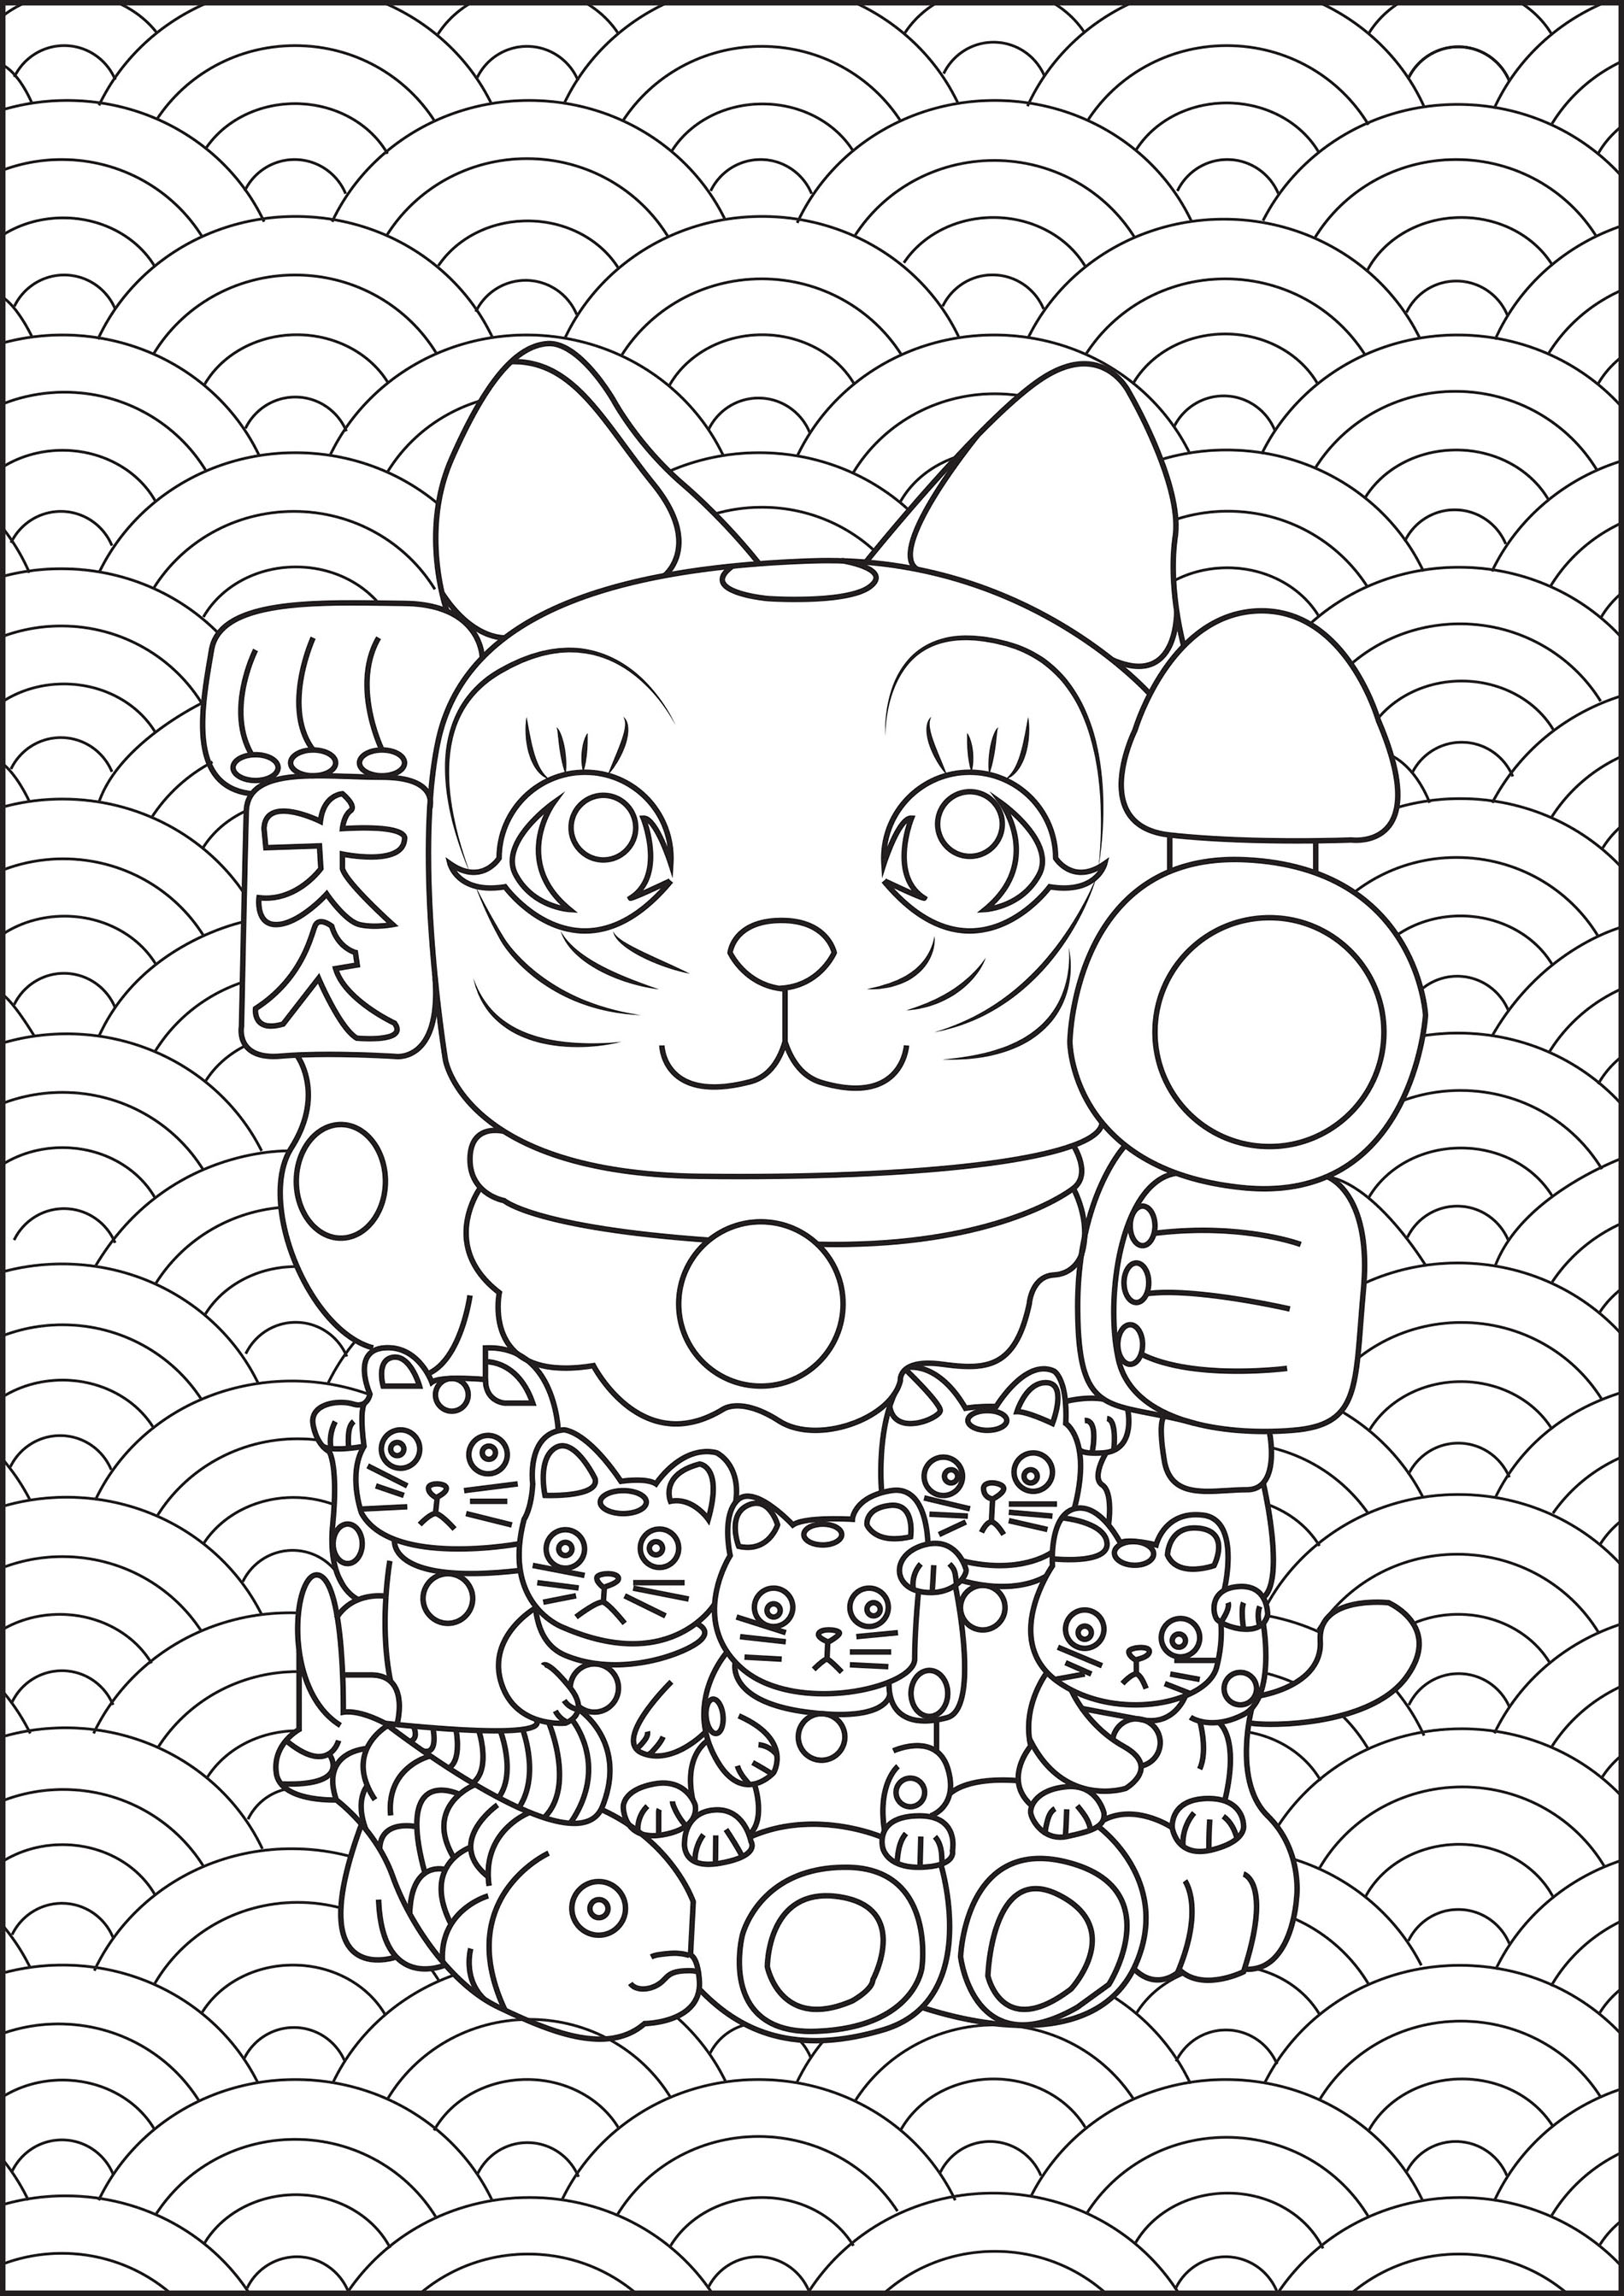 Free Maneki Neko coloring page to print and color, for kids